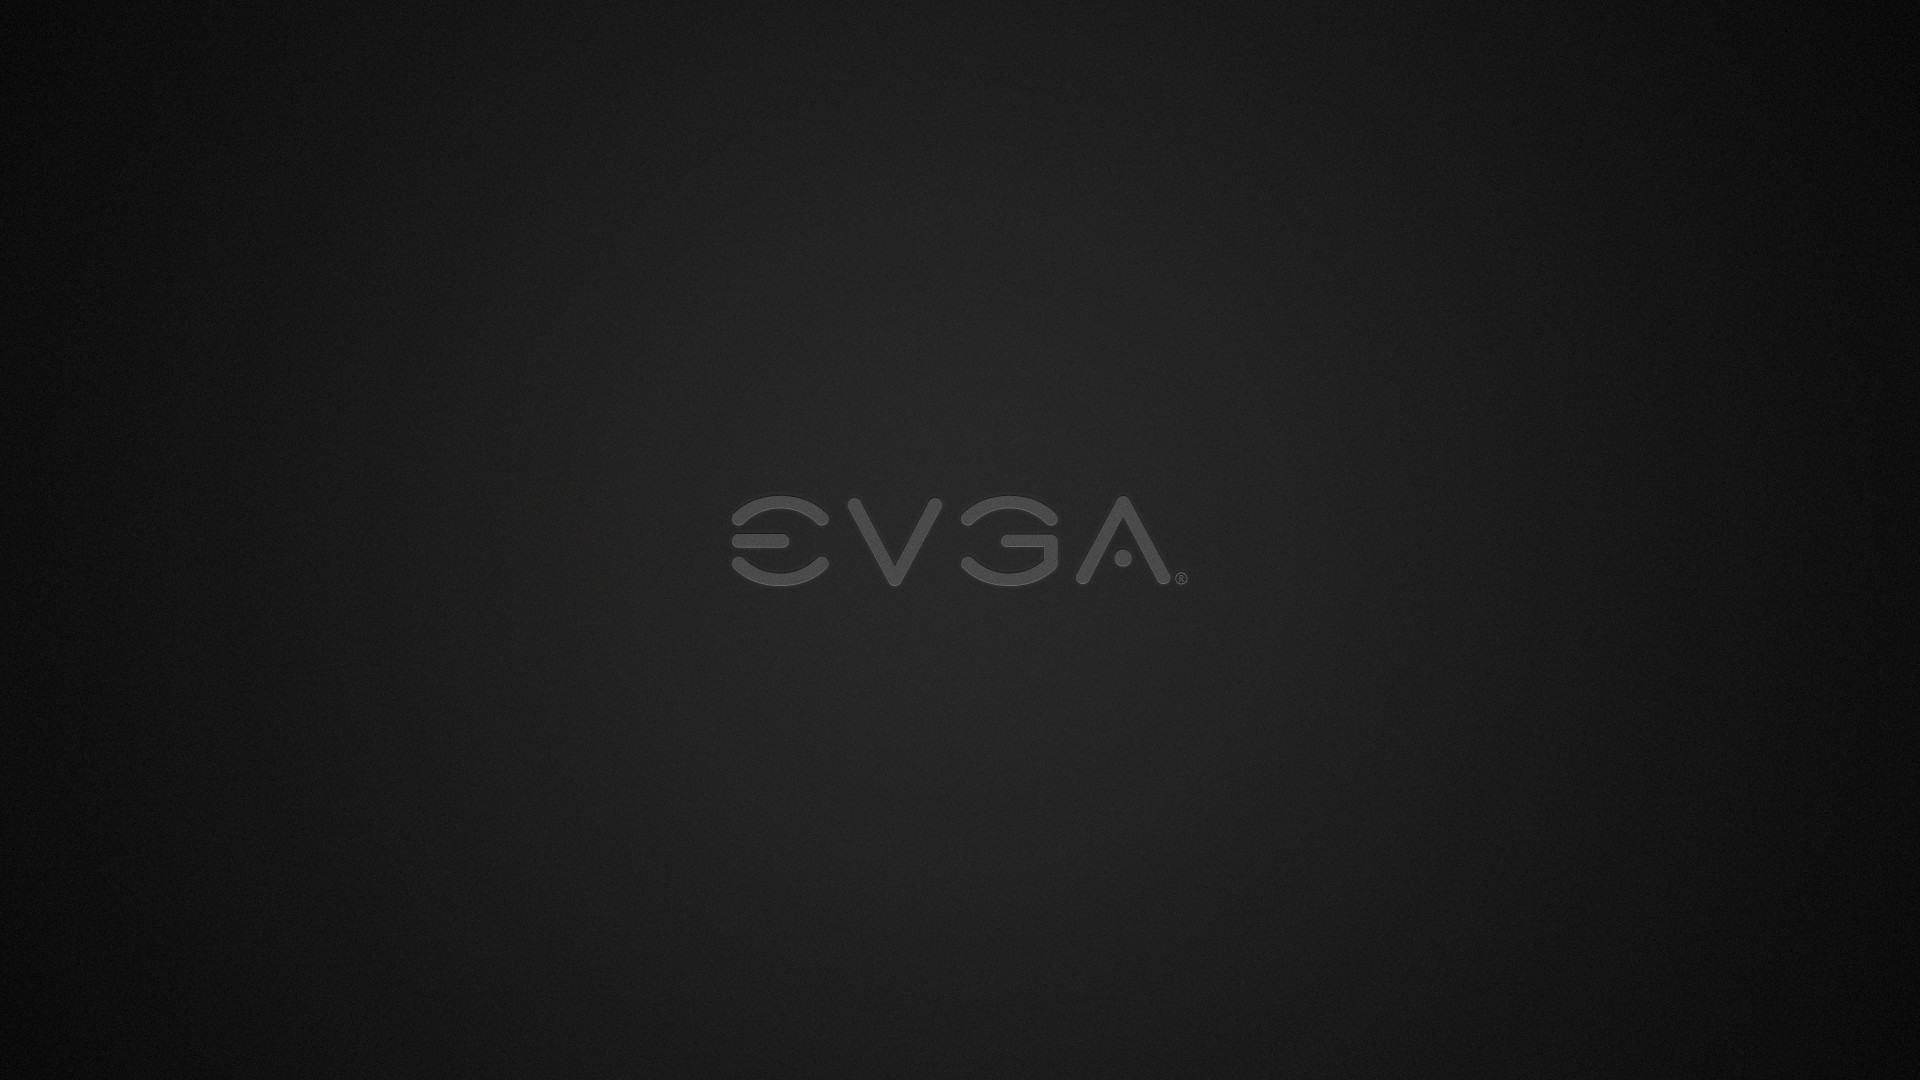 evga computer graphics card Wallpapers HD / Desktop and Mobile Backgrounds